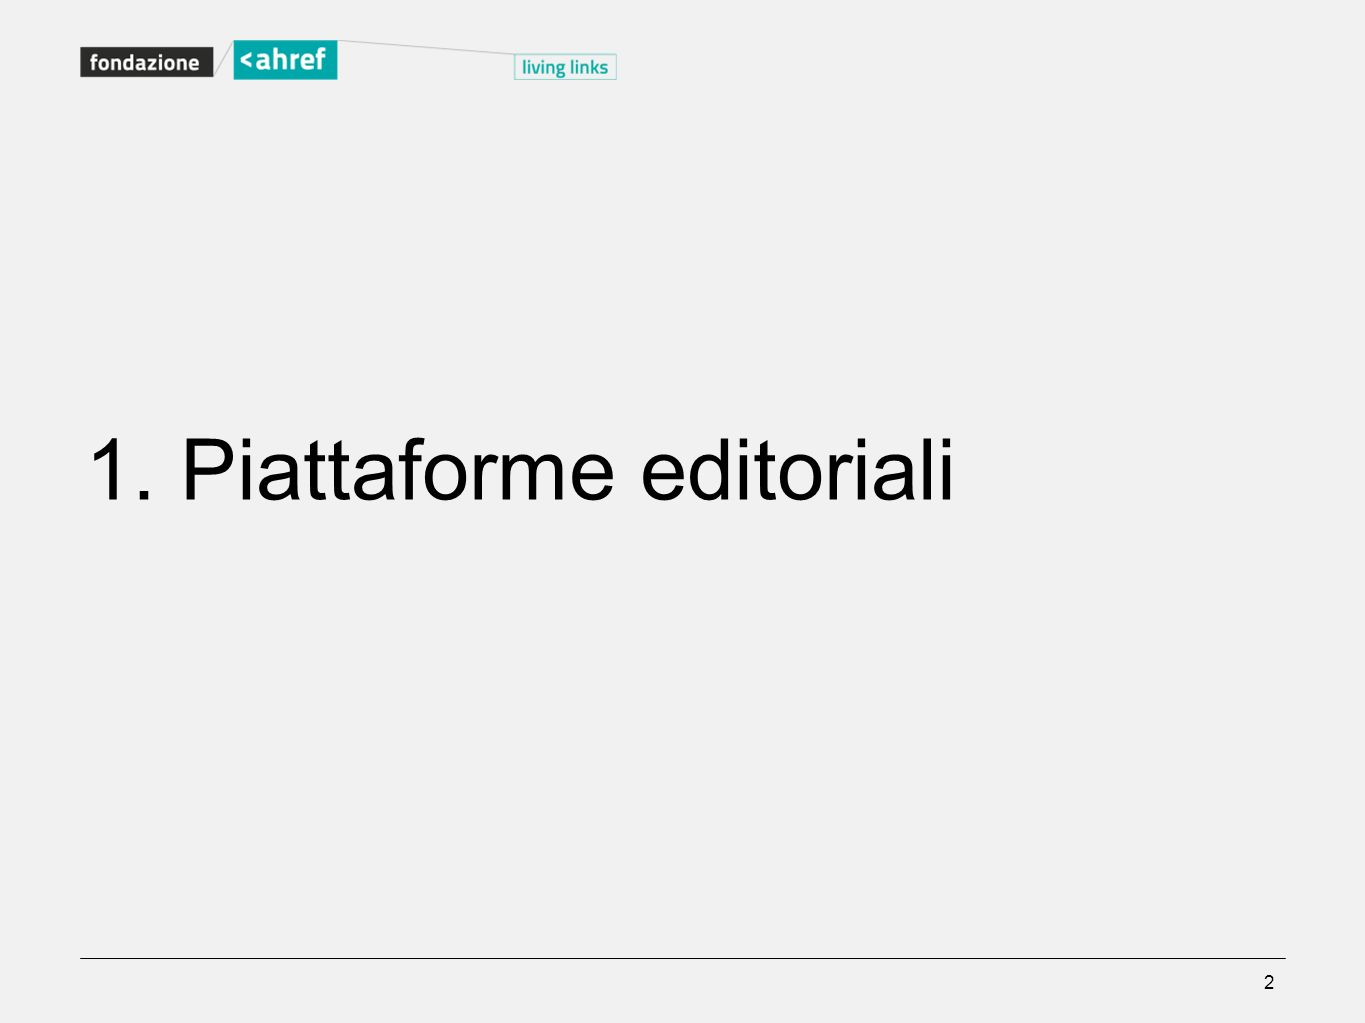 1. Piattaforme editoriali